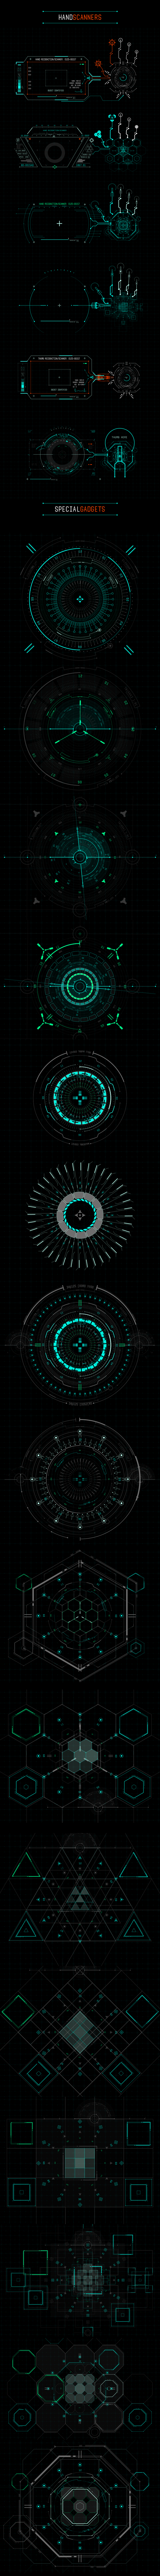 hud_catalogue-02_hs_sg